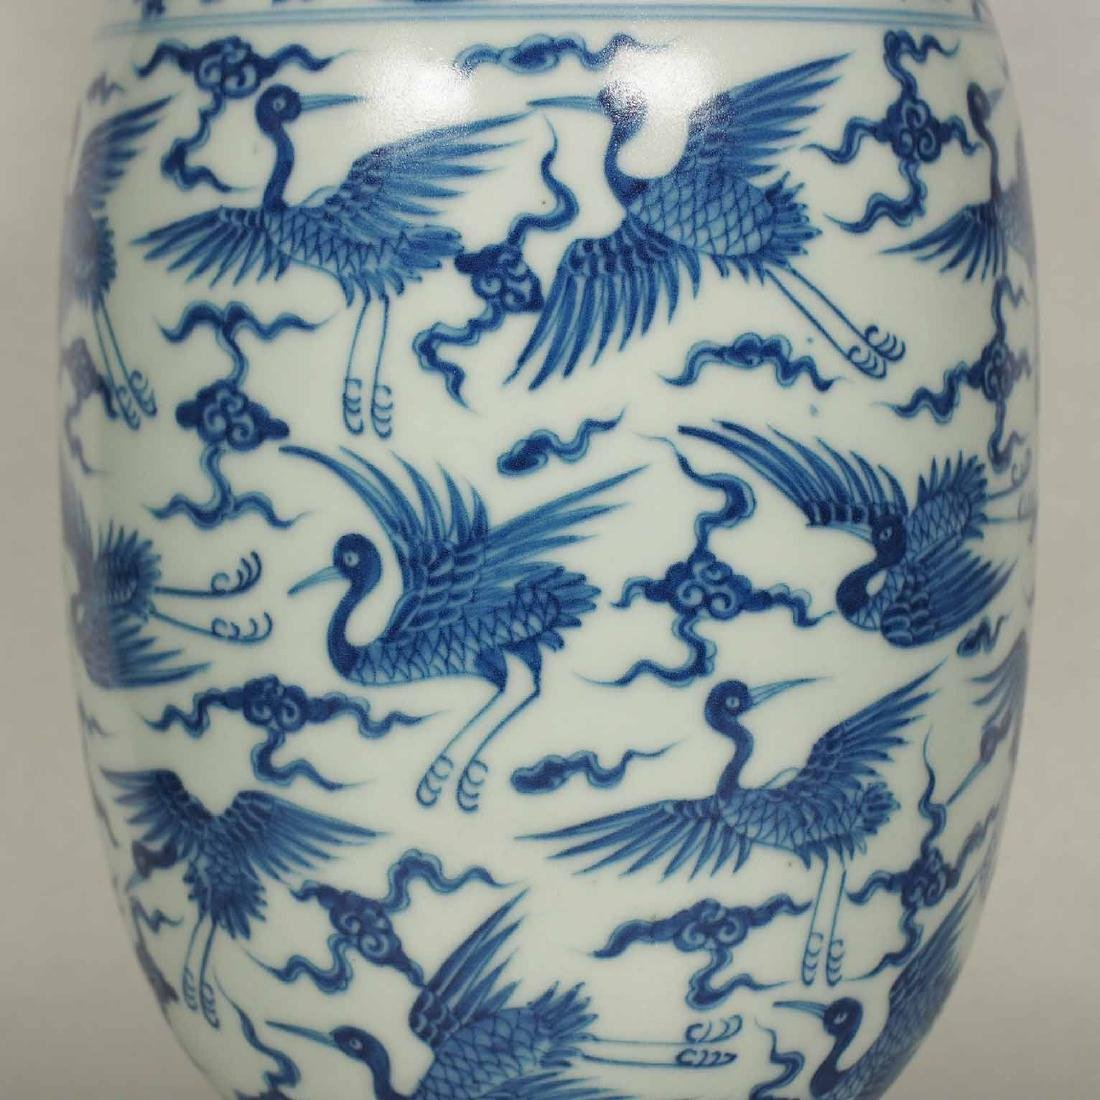 Vase with Flying Cranes Design, Ming Dynasty - 3